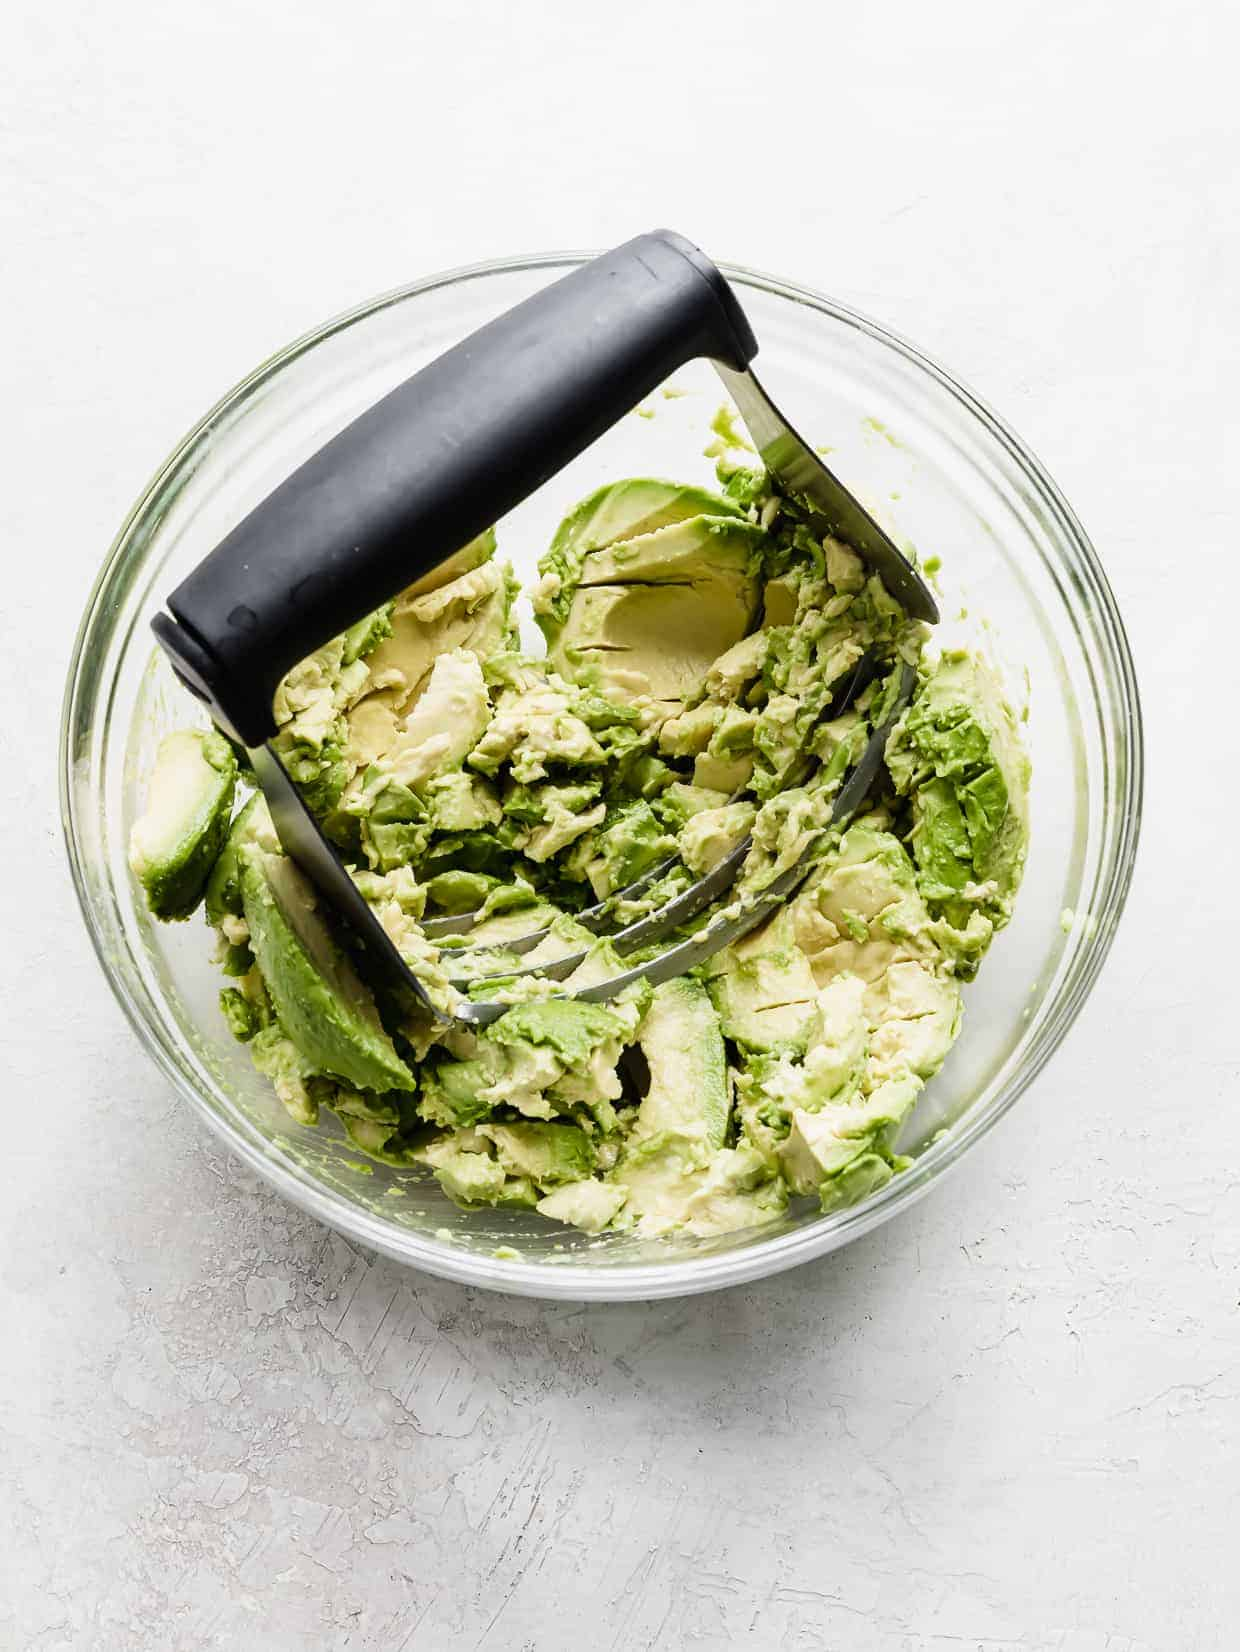 Fresh avocados in a glass bowl with a pastry blender smashing them.